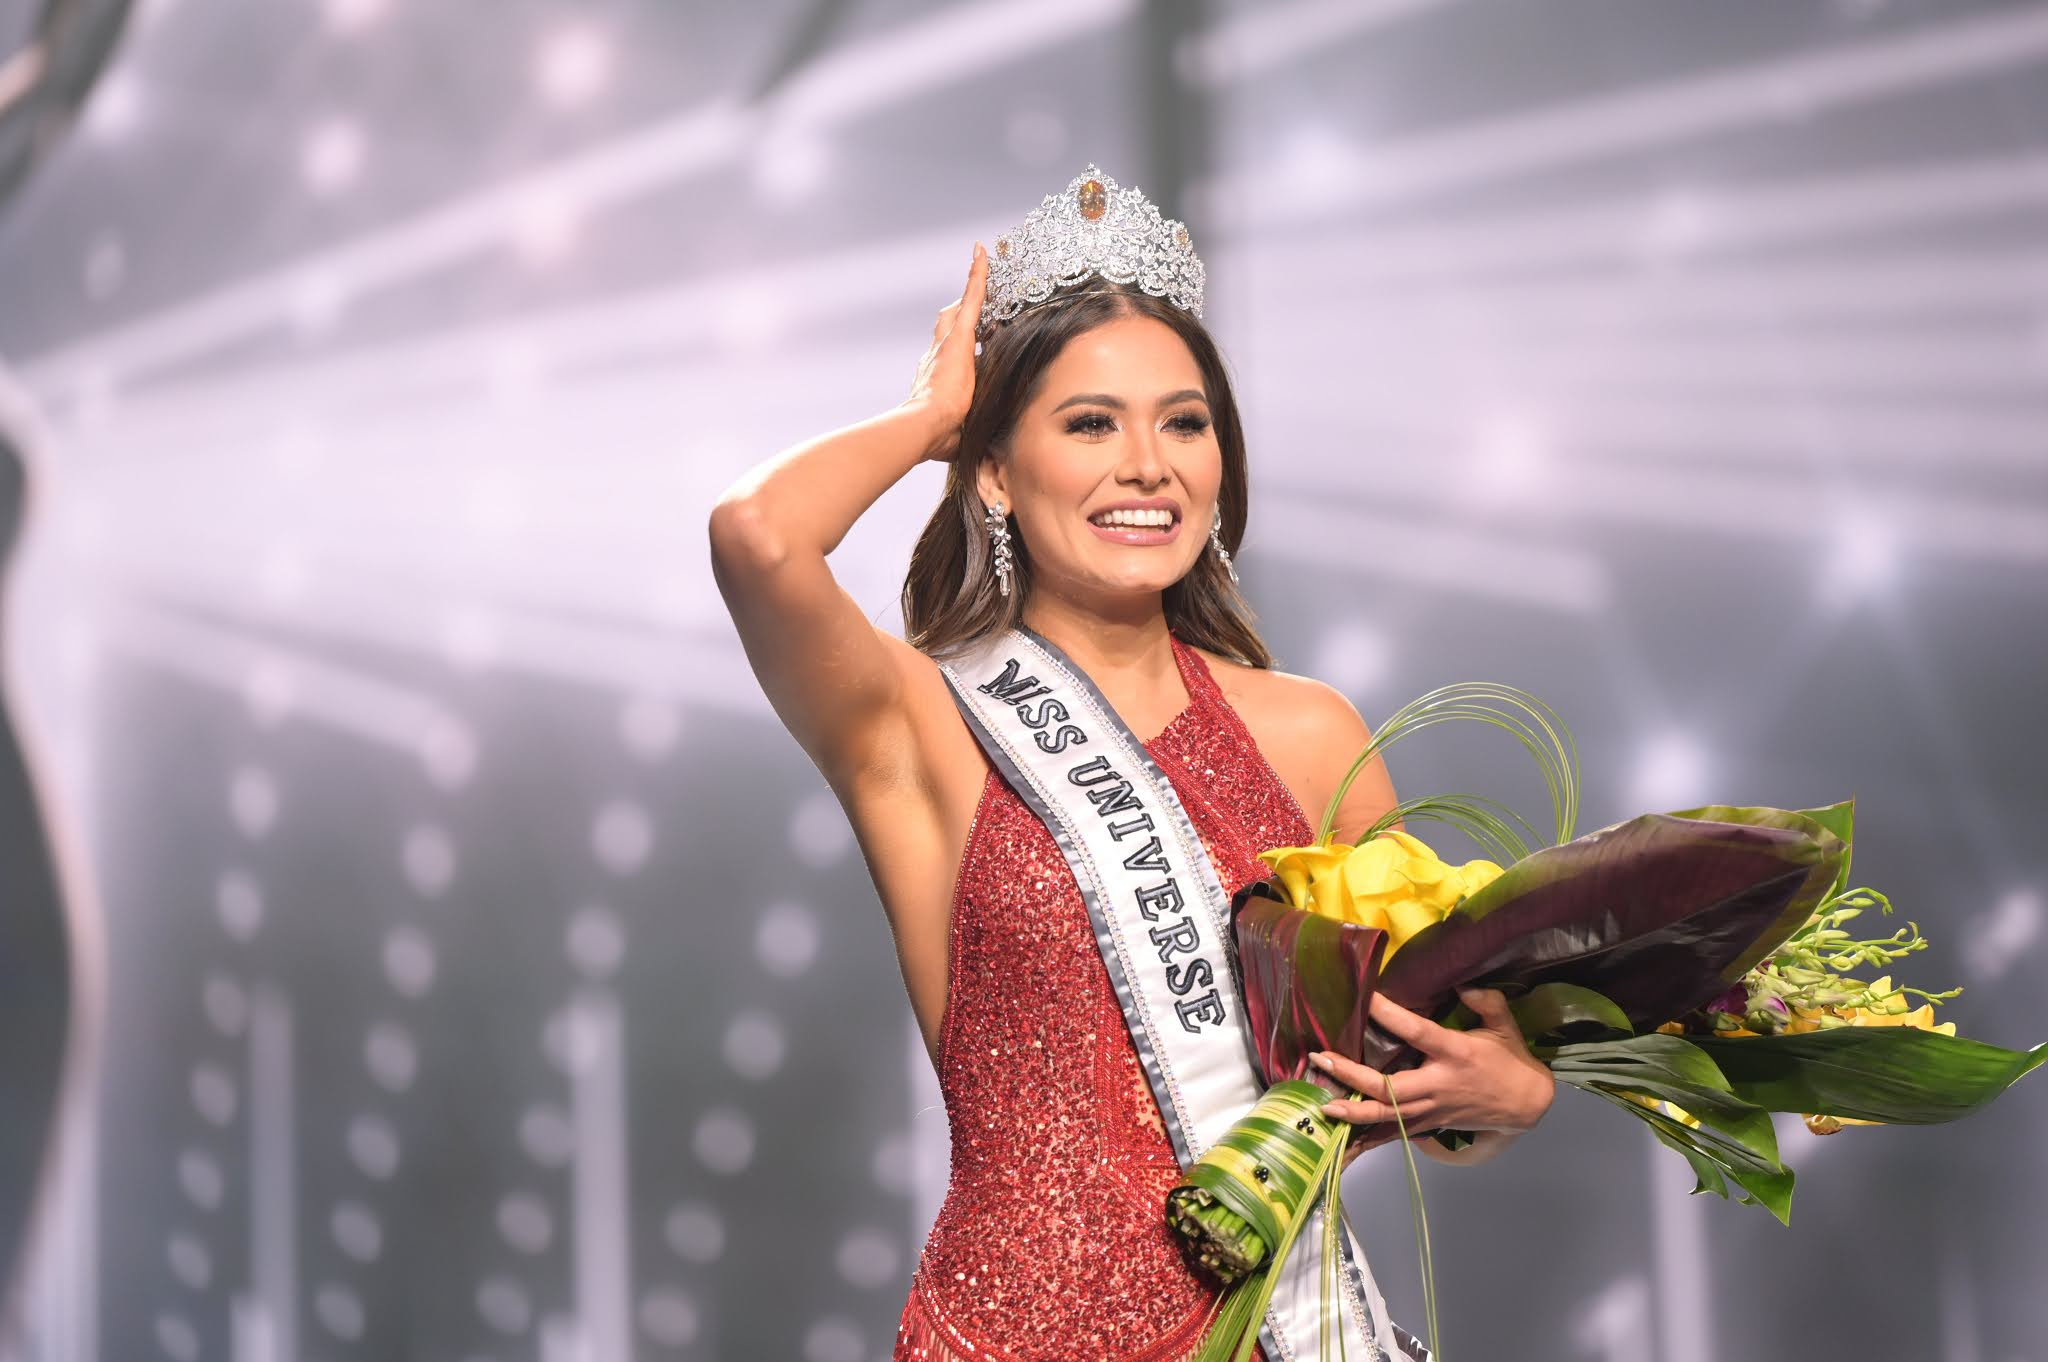 Software engineer Andrea Meza of Mexico crowned 69th Miss Universe, beating out Miss Brazil